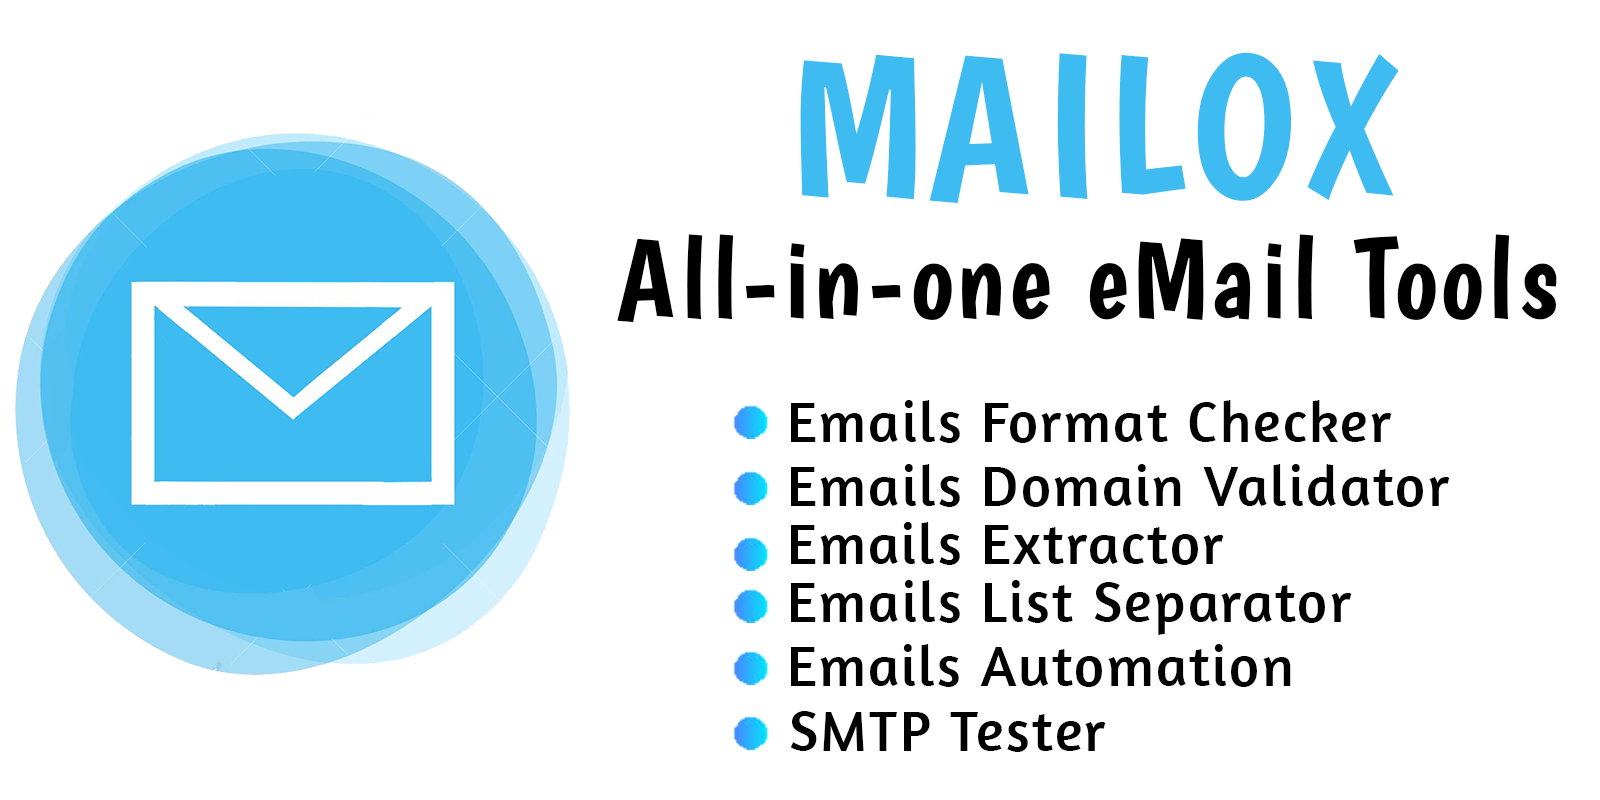 Mailox - All-in-one eMail Tools